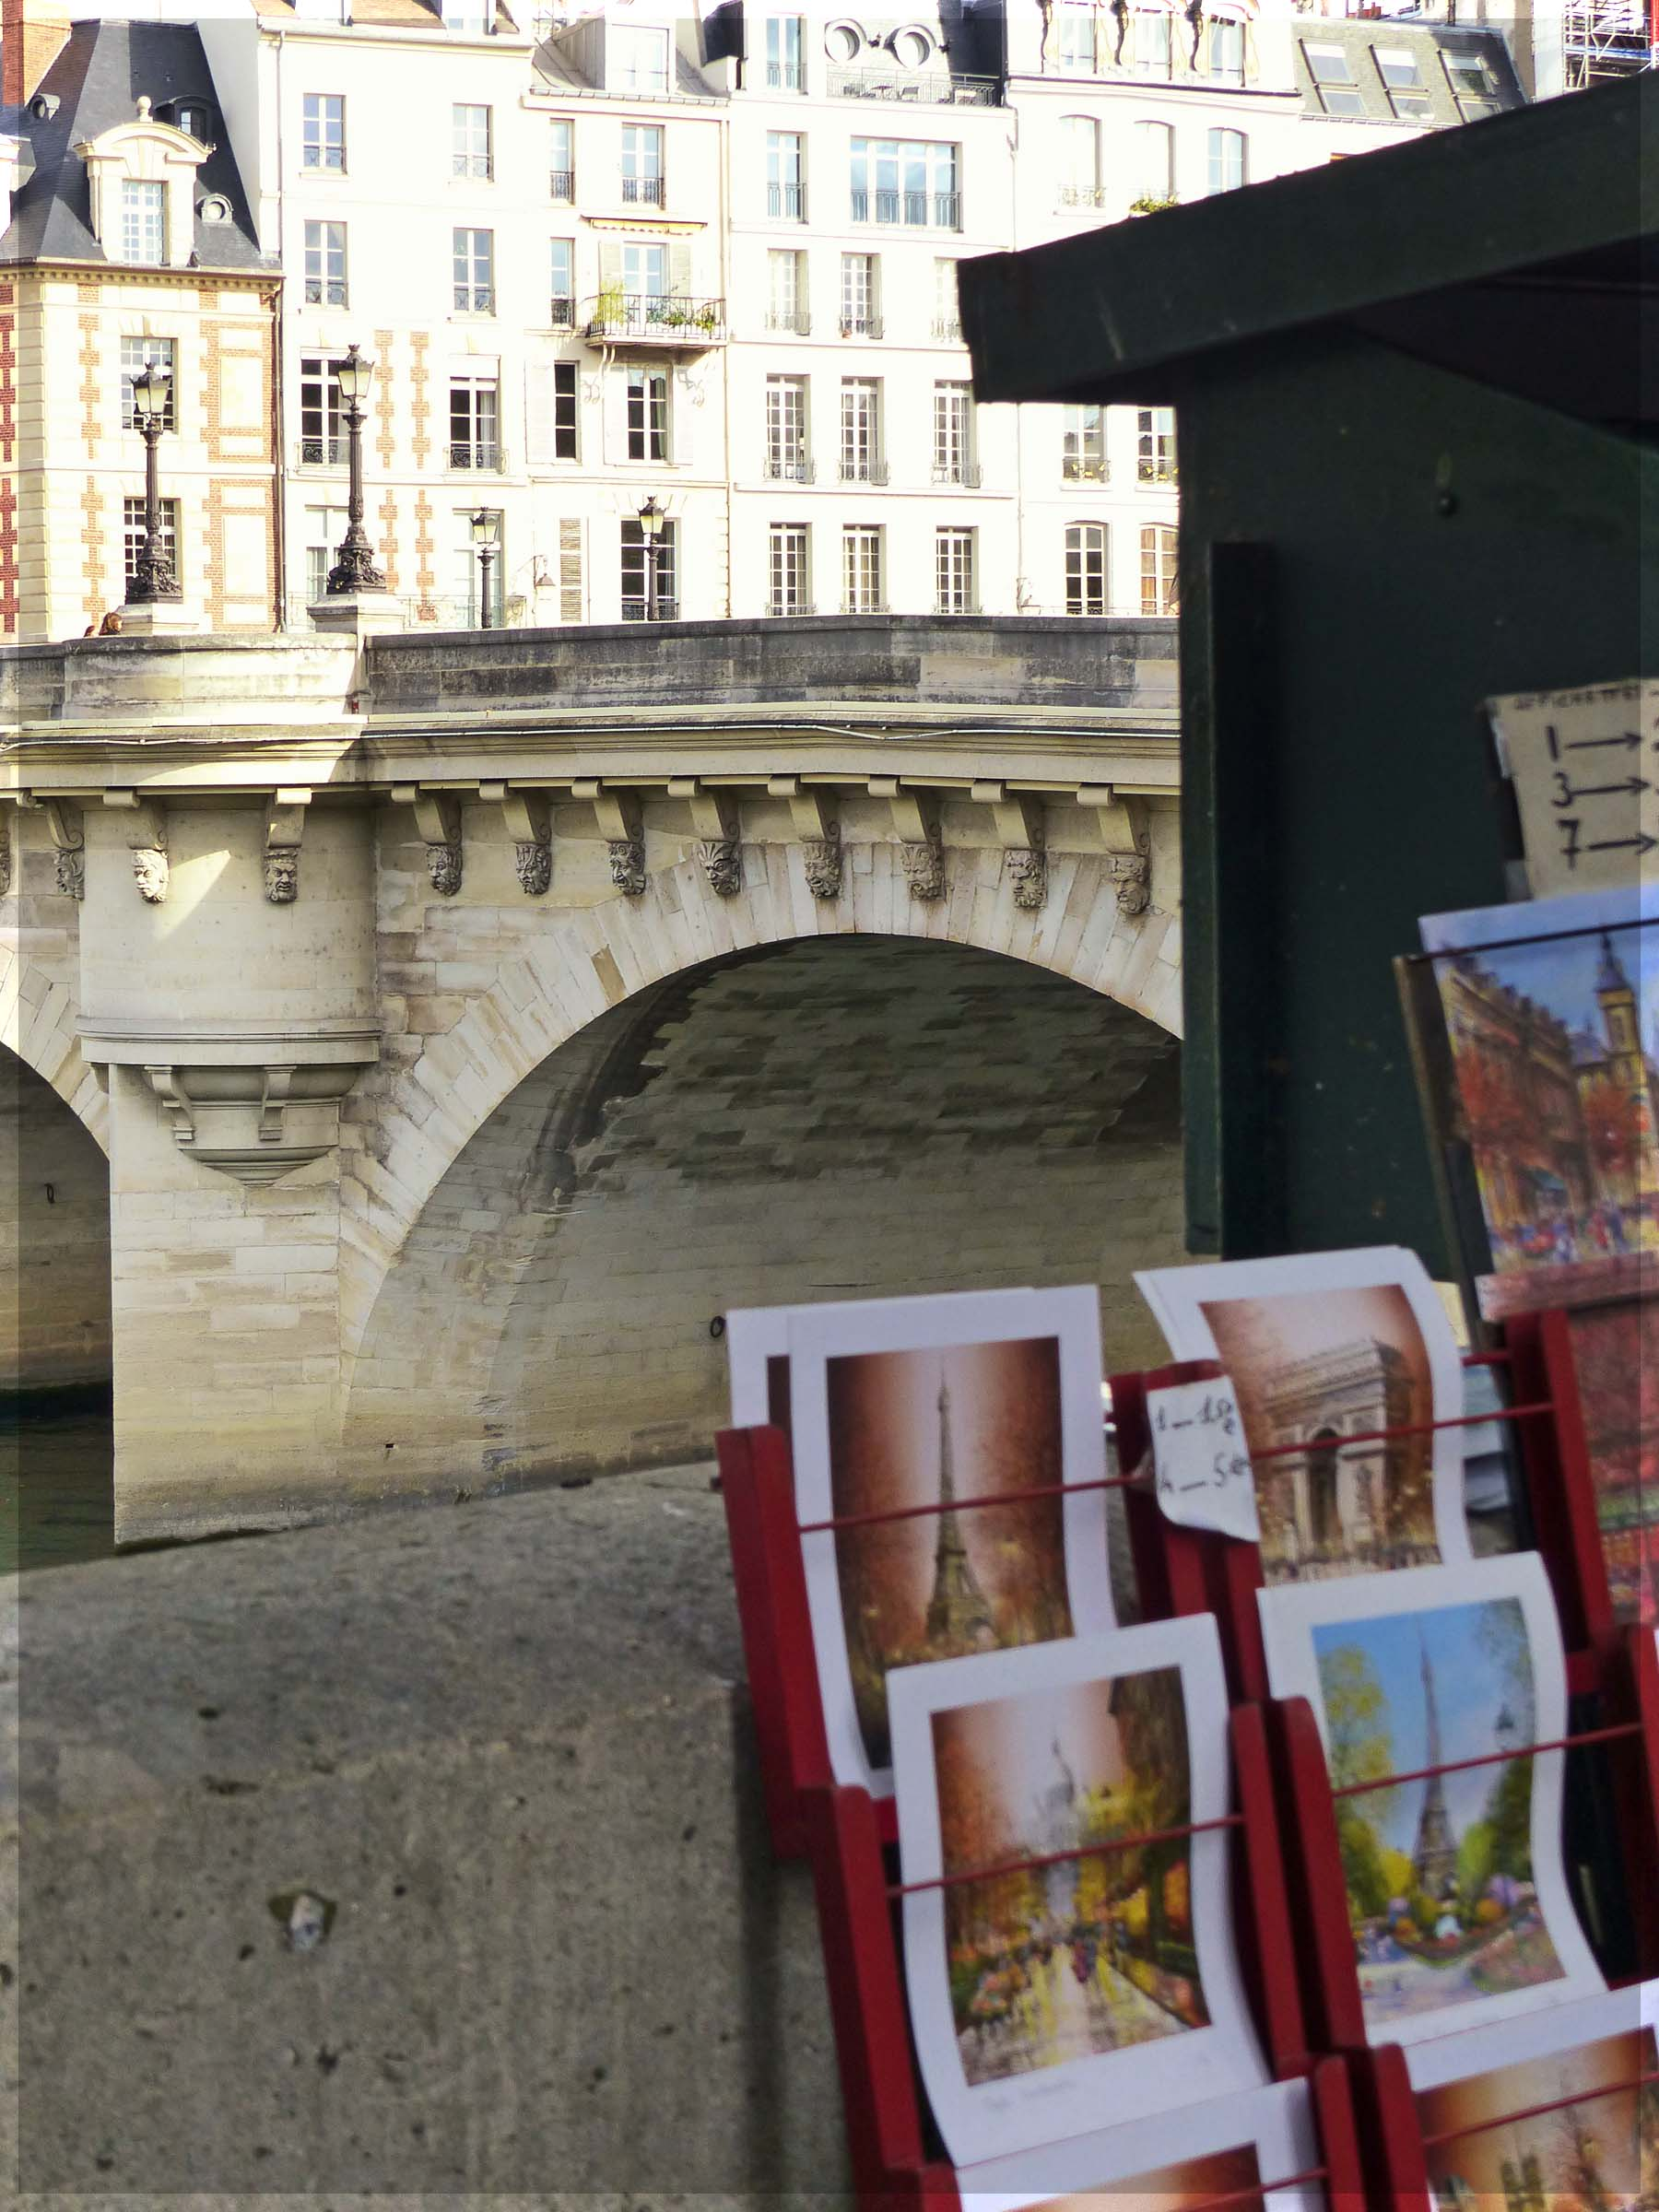 Stall selling pictures with bridge beyond